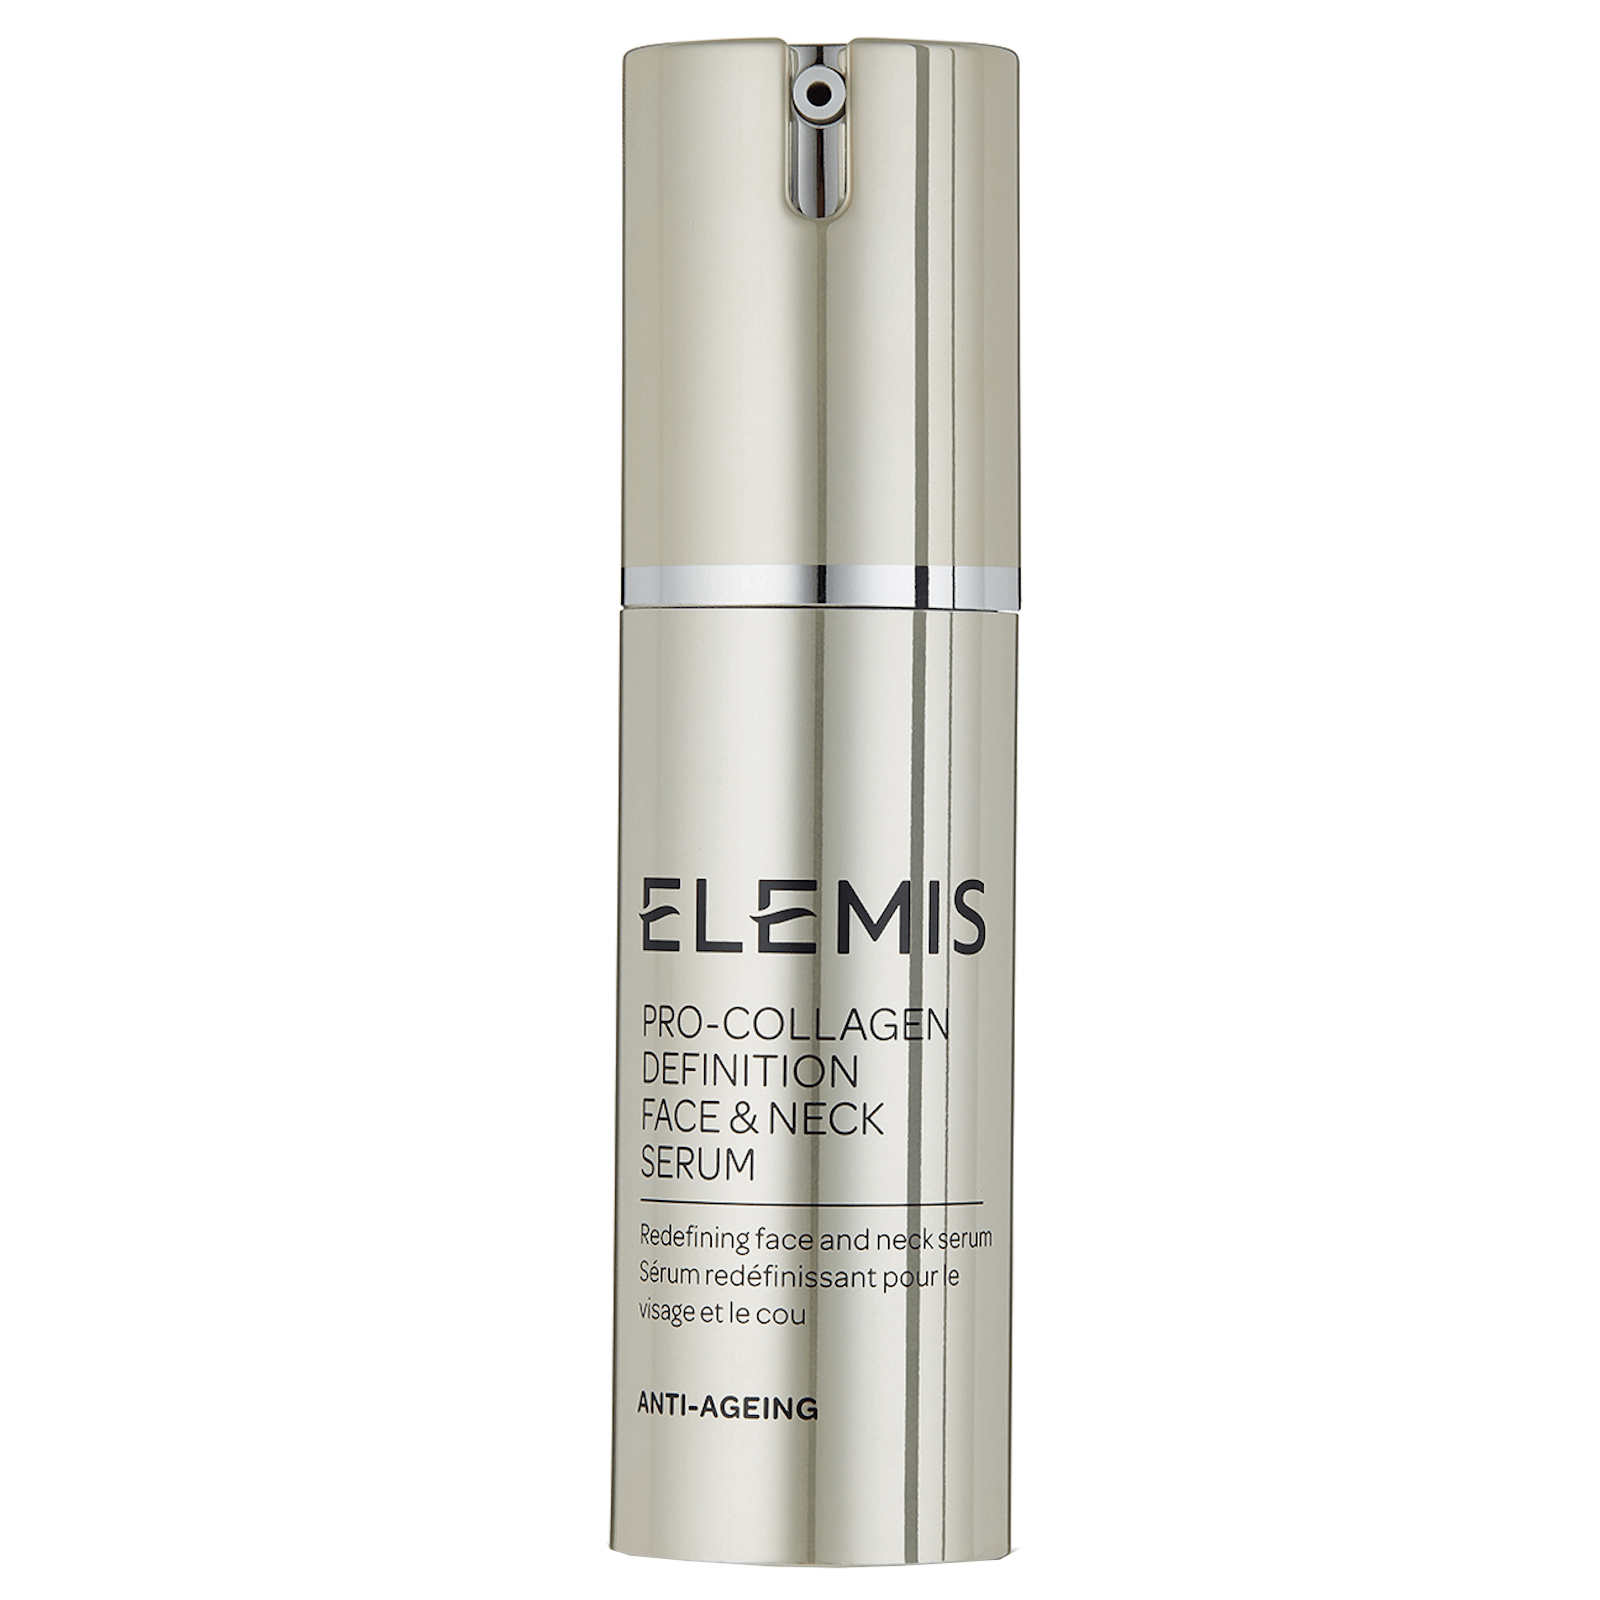 Elemis Pro-Collagen Definition Face and Neck Serum, 30ml, Face Serum, London Loves Beauty